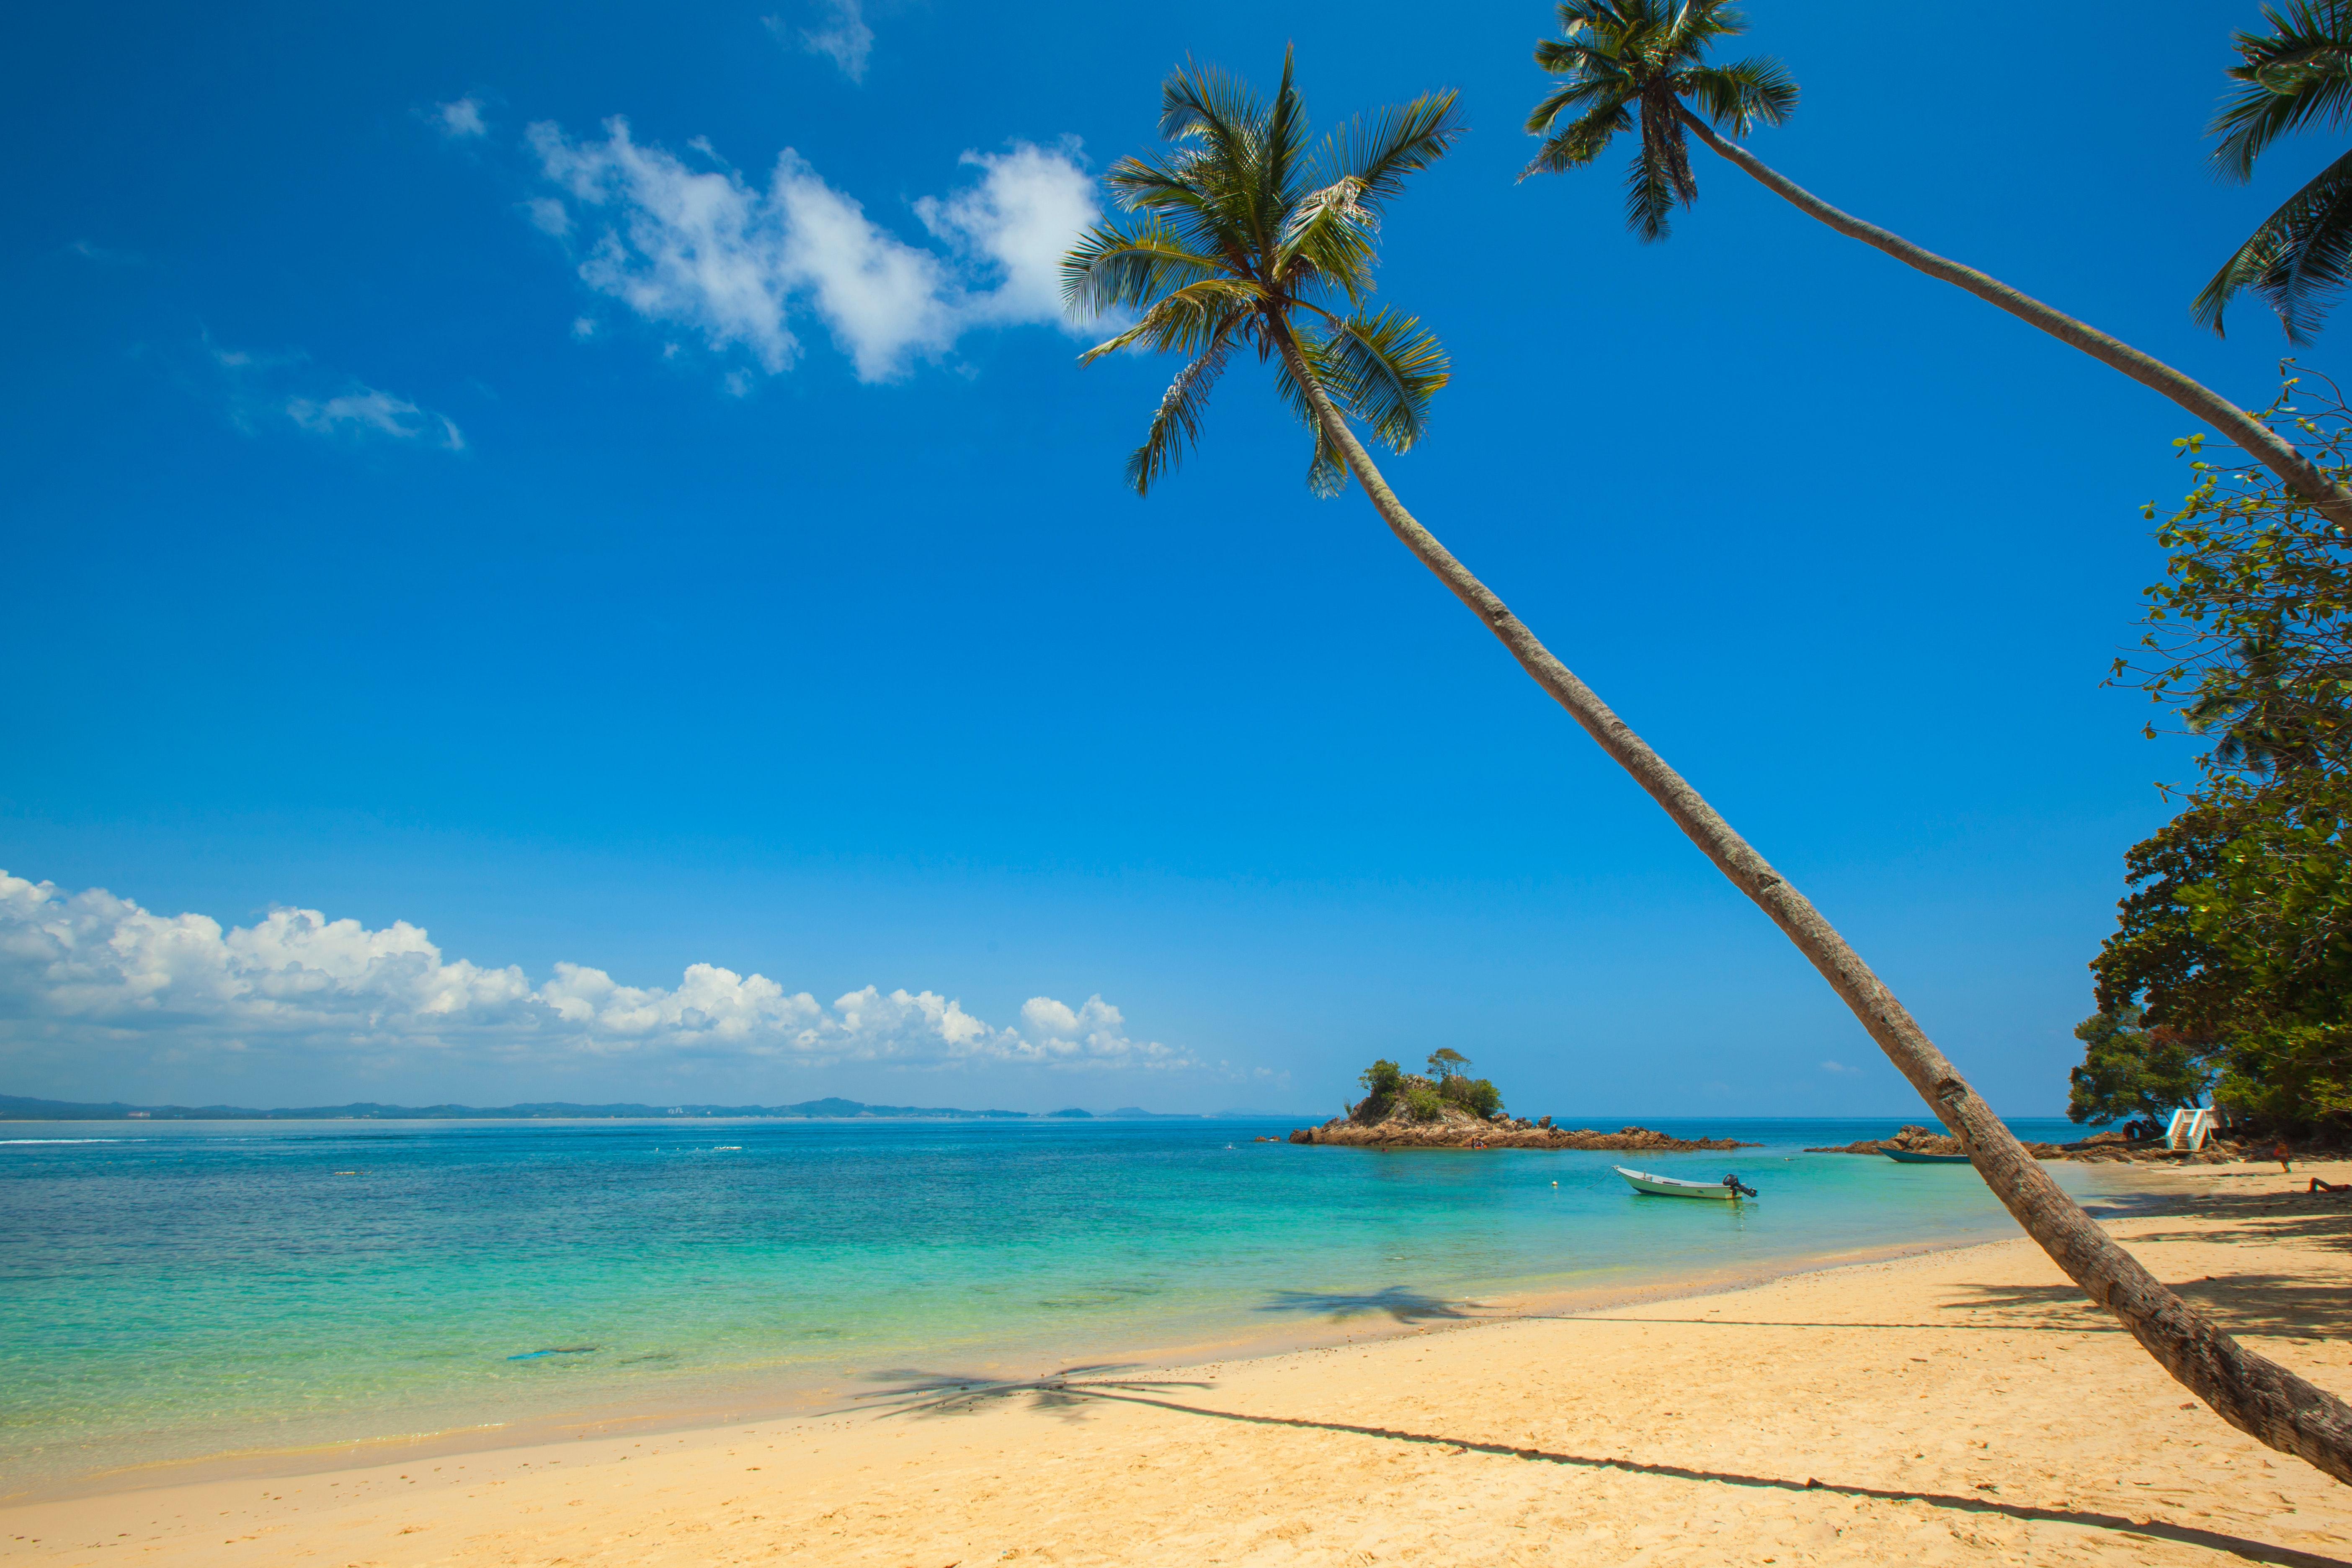 Green coconut palm beside seashore under blue calm sky during daytime photo